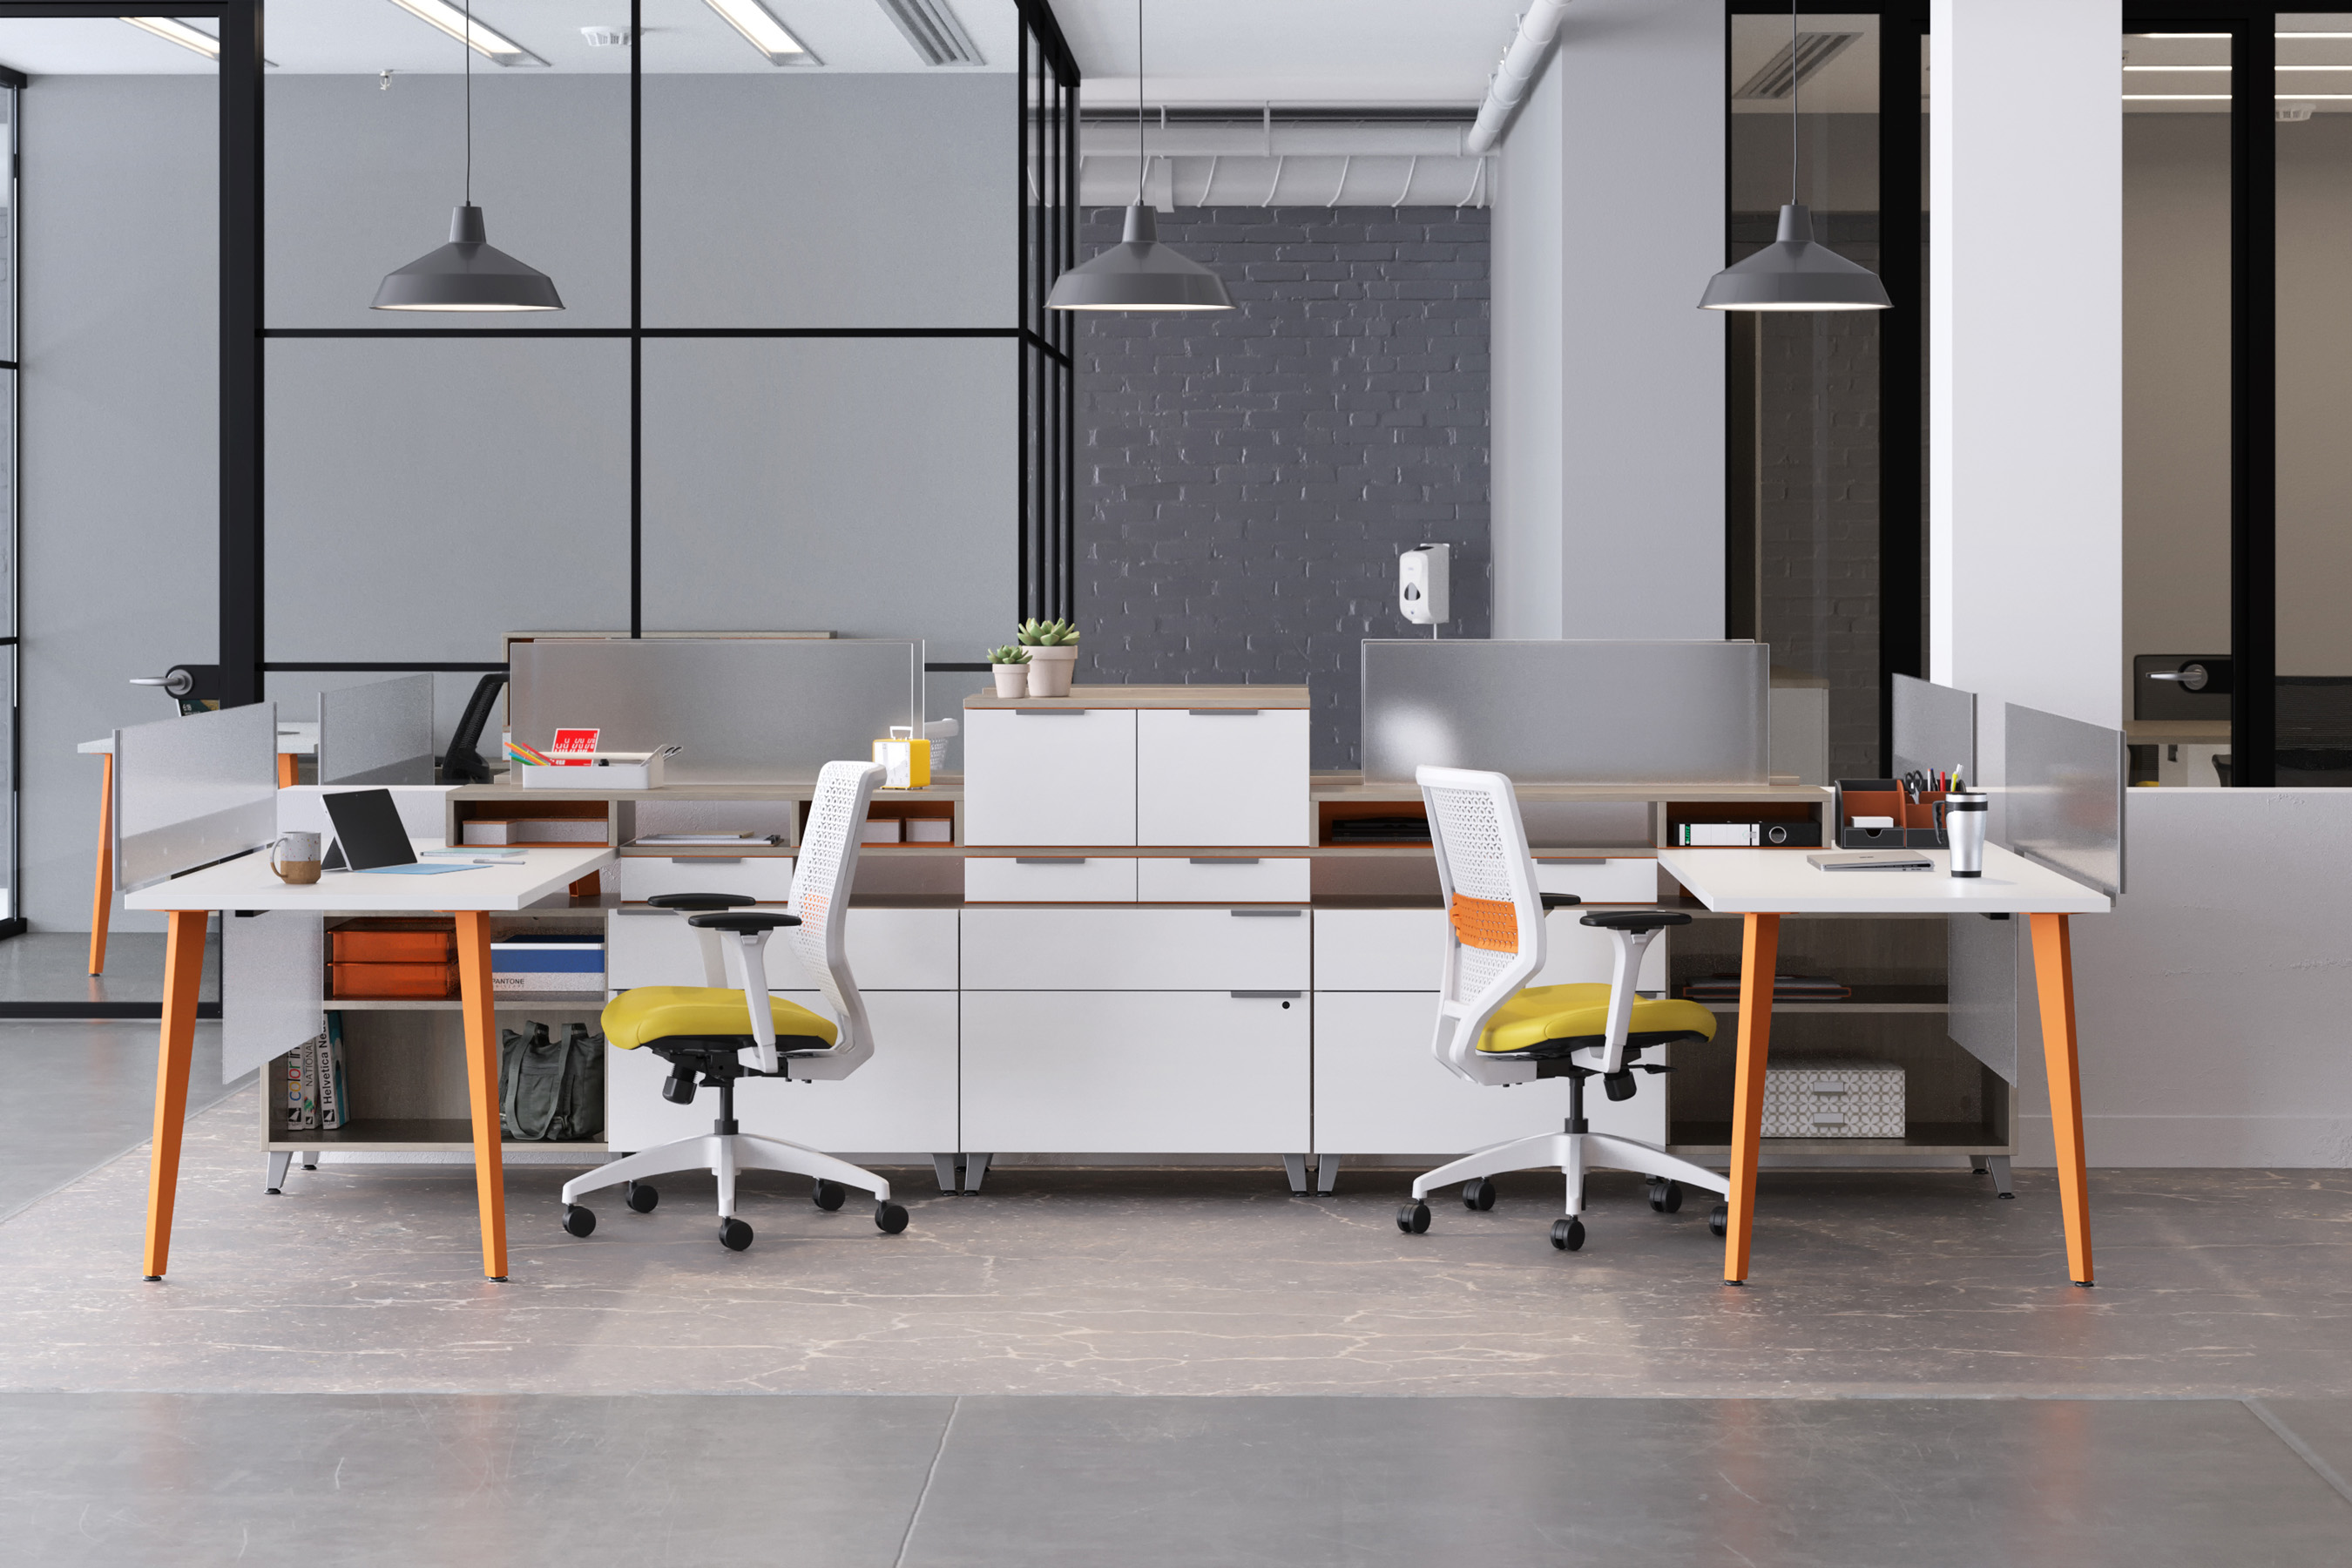 Mobile and freestanding screens provide a sense of safety and privacy to all workers, yet don't inhibit collaboration.